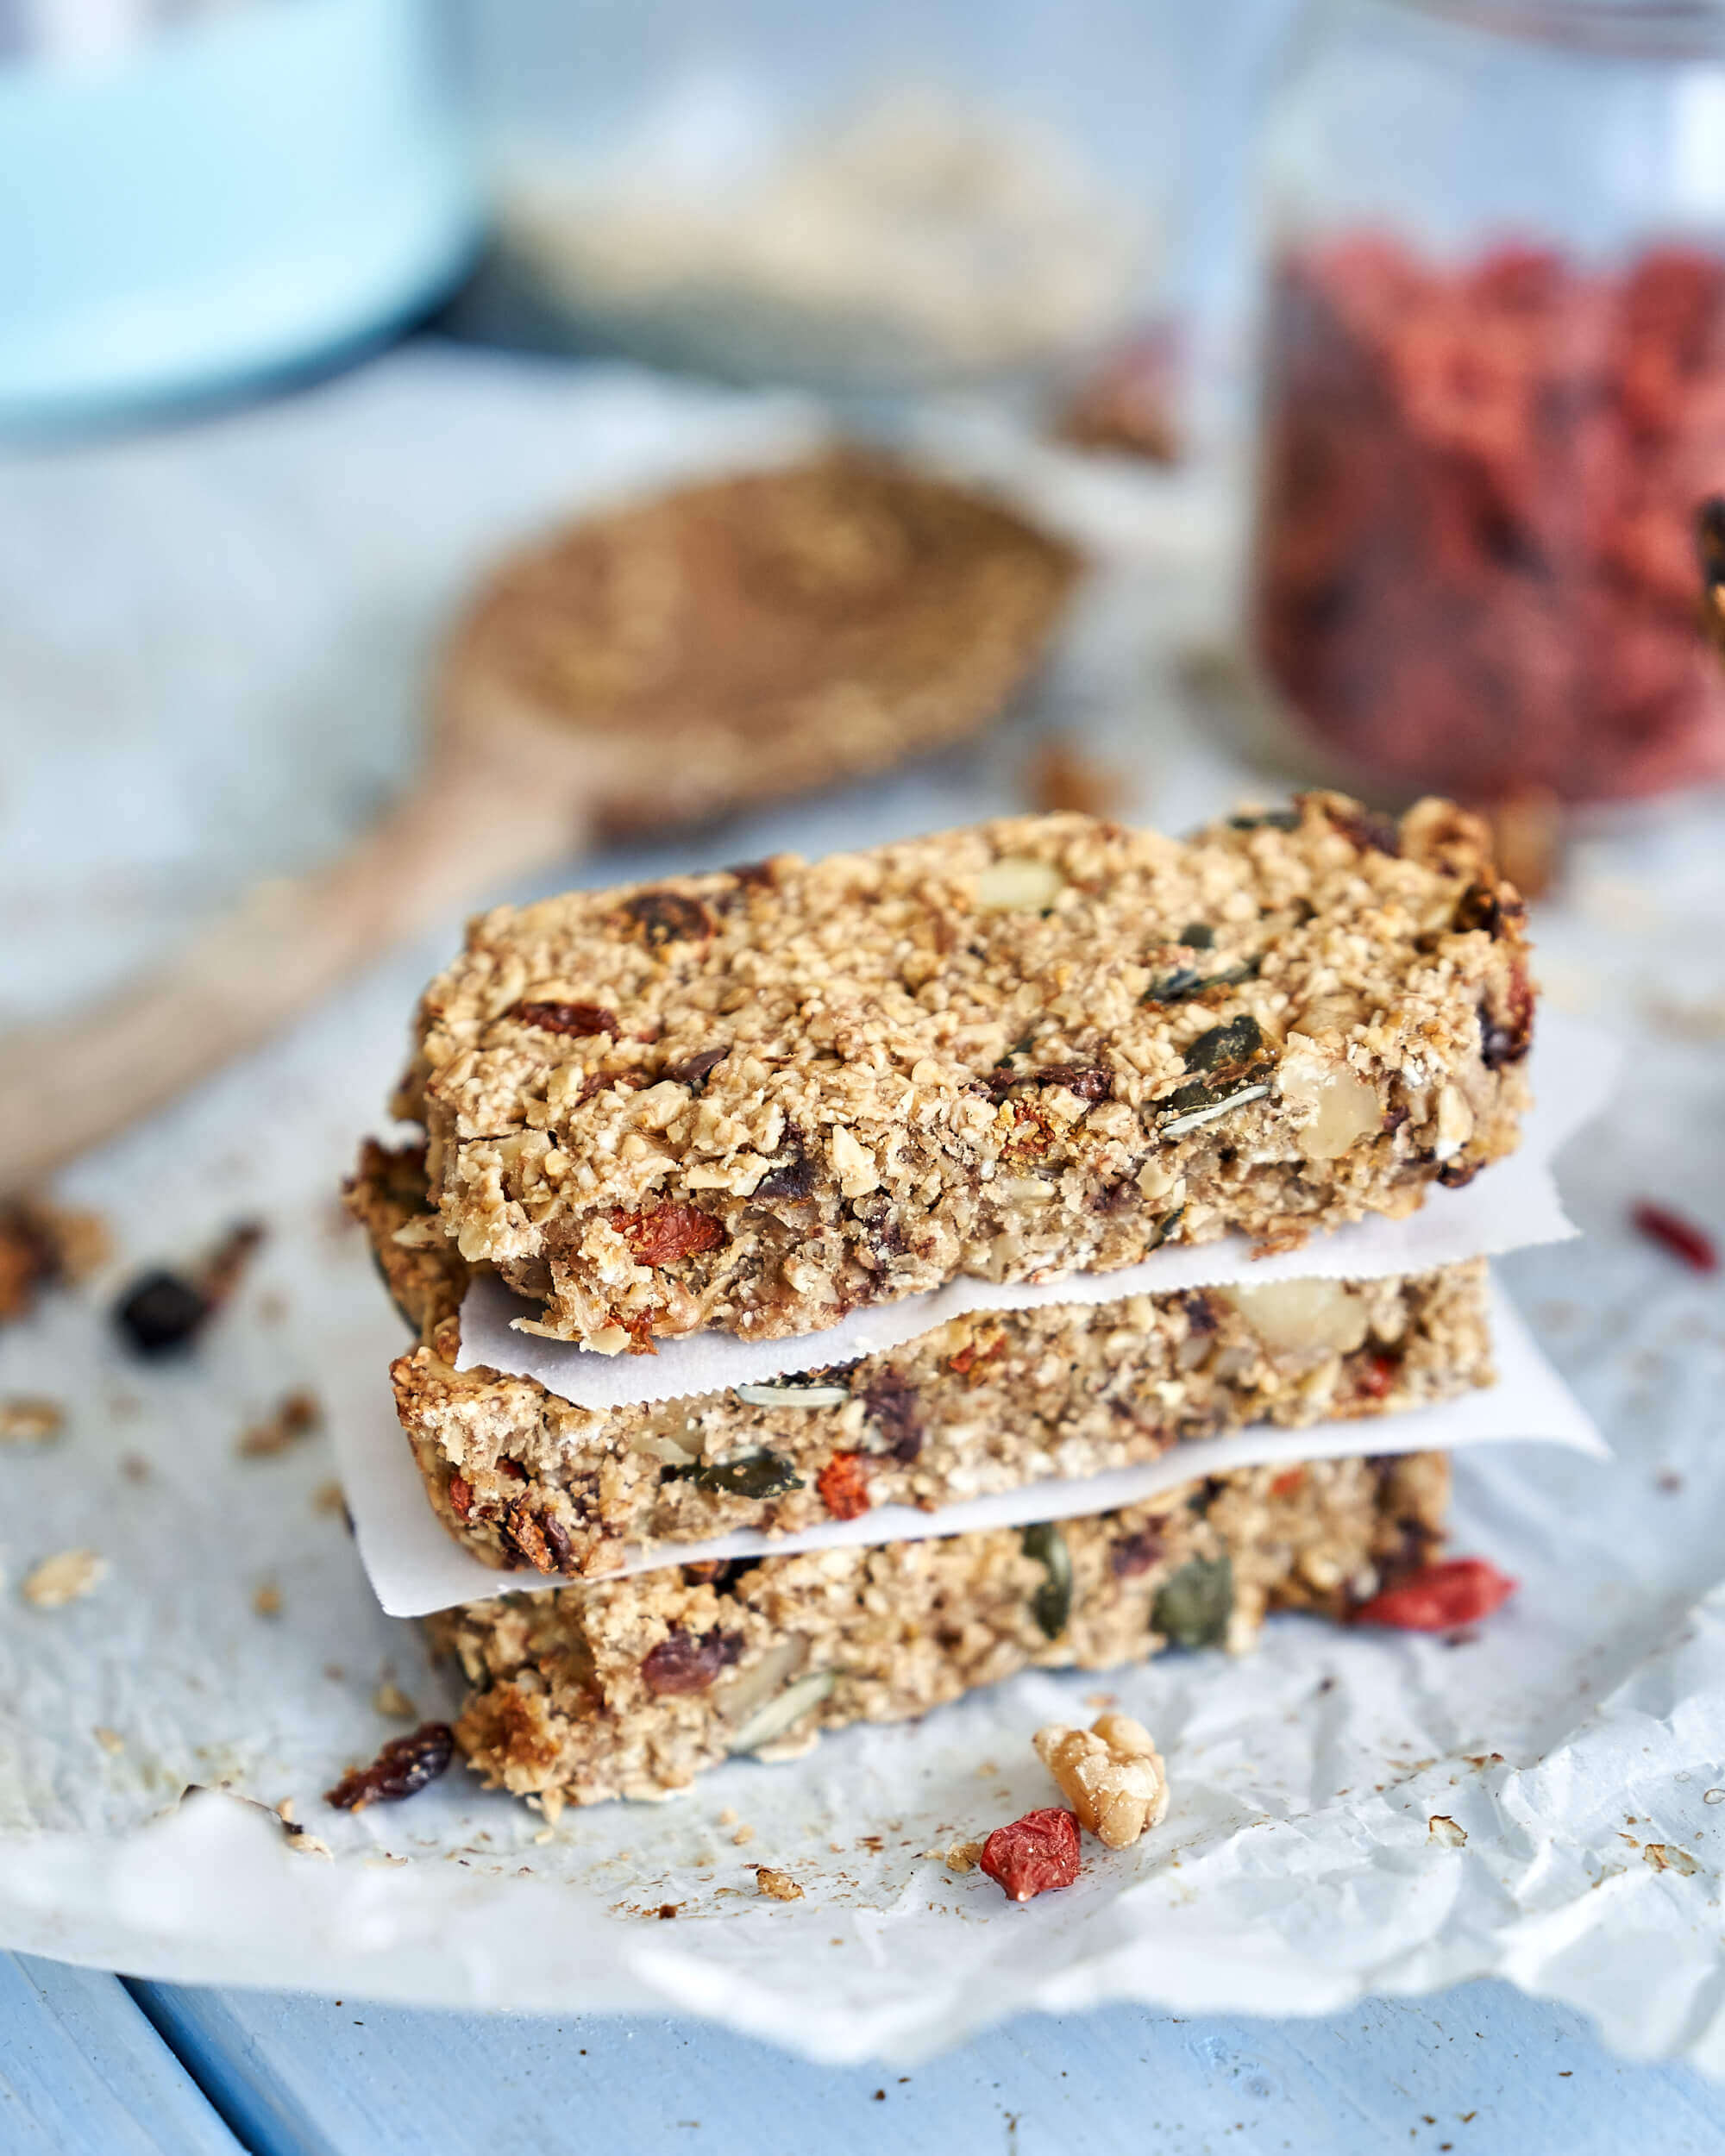 Everyday Superfood Bars